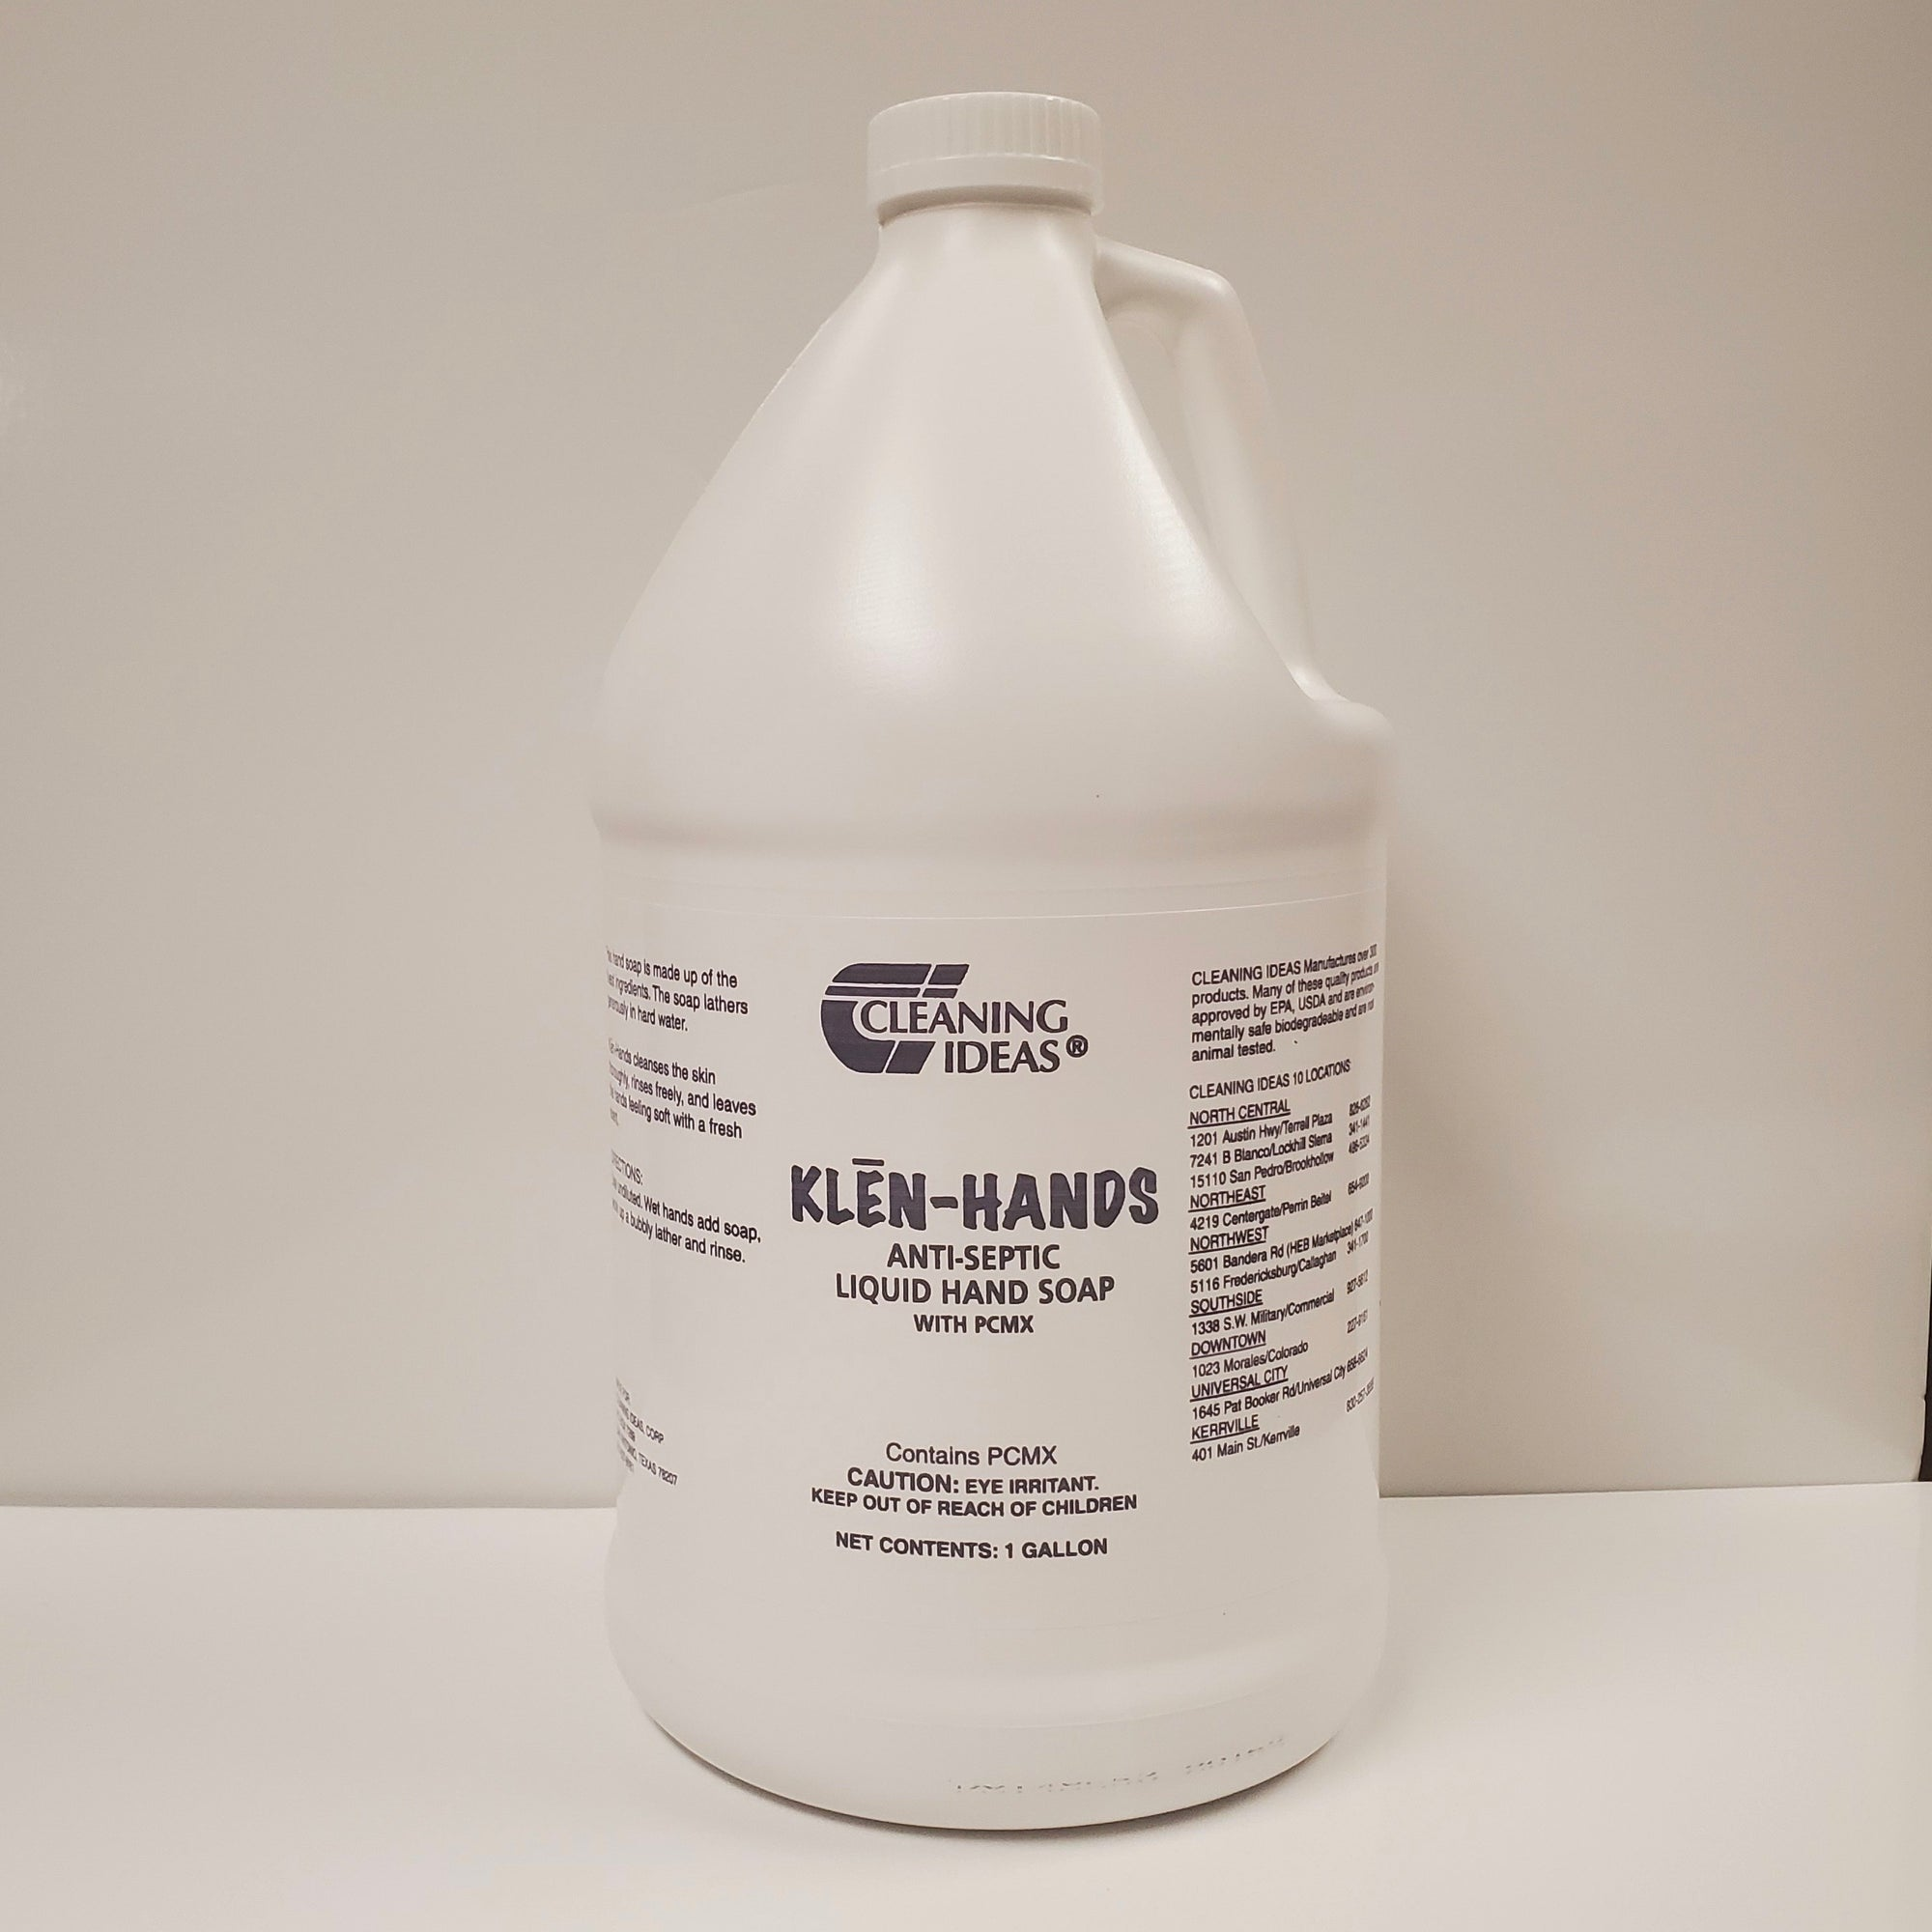 Klen-Hands Anti-Septic Hand Soap